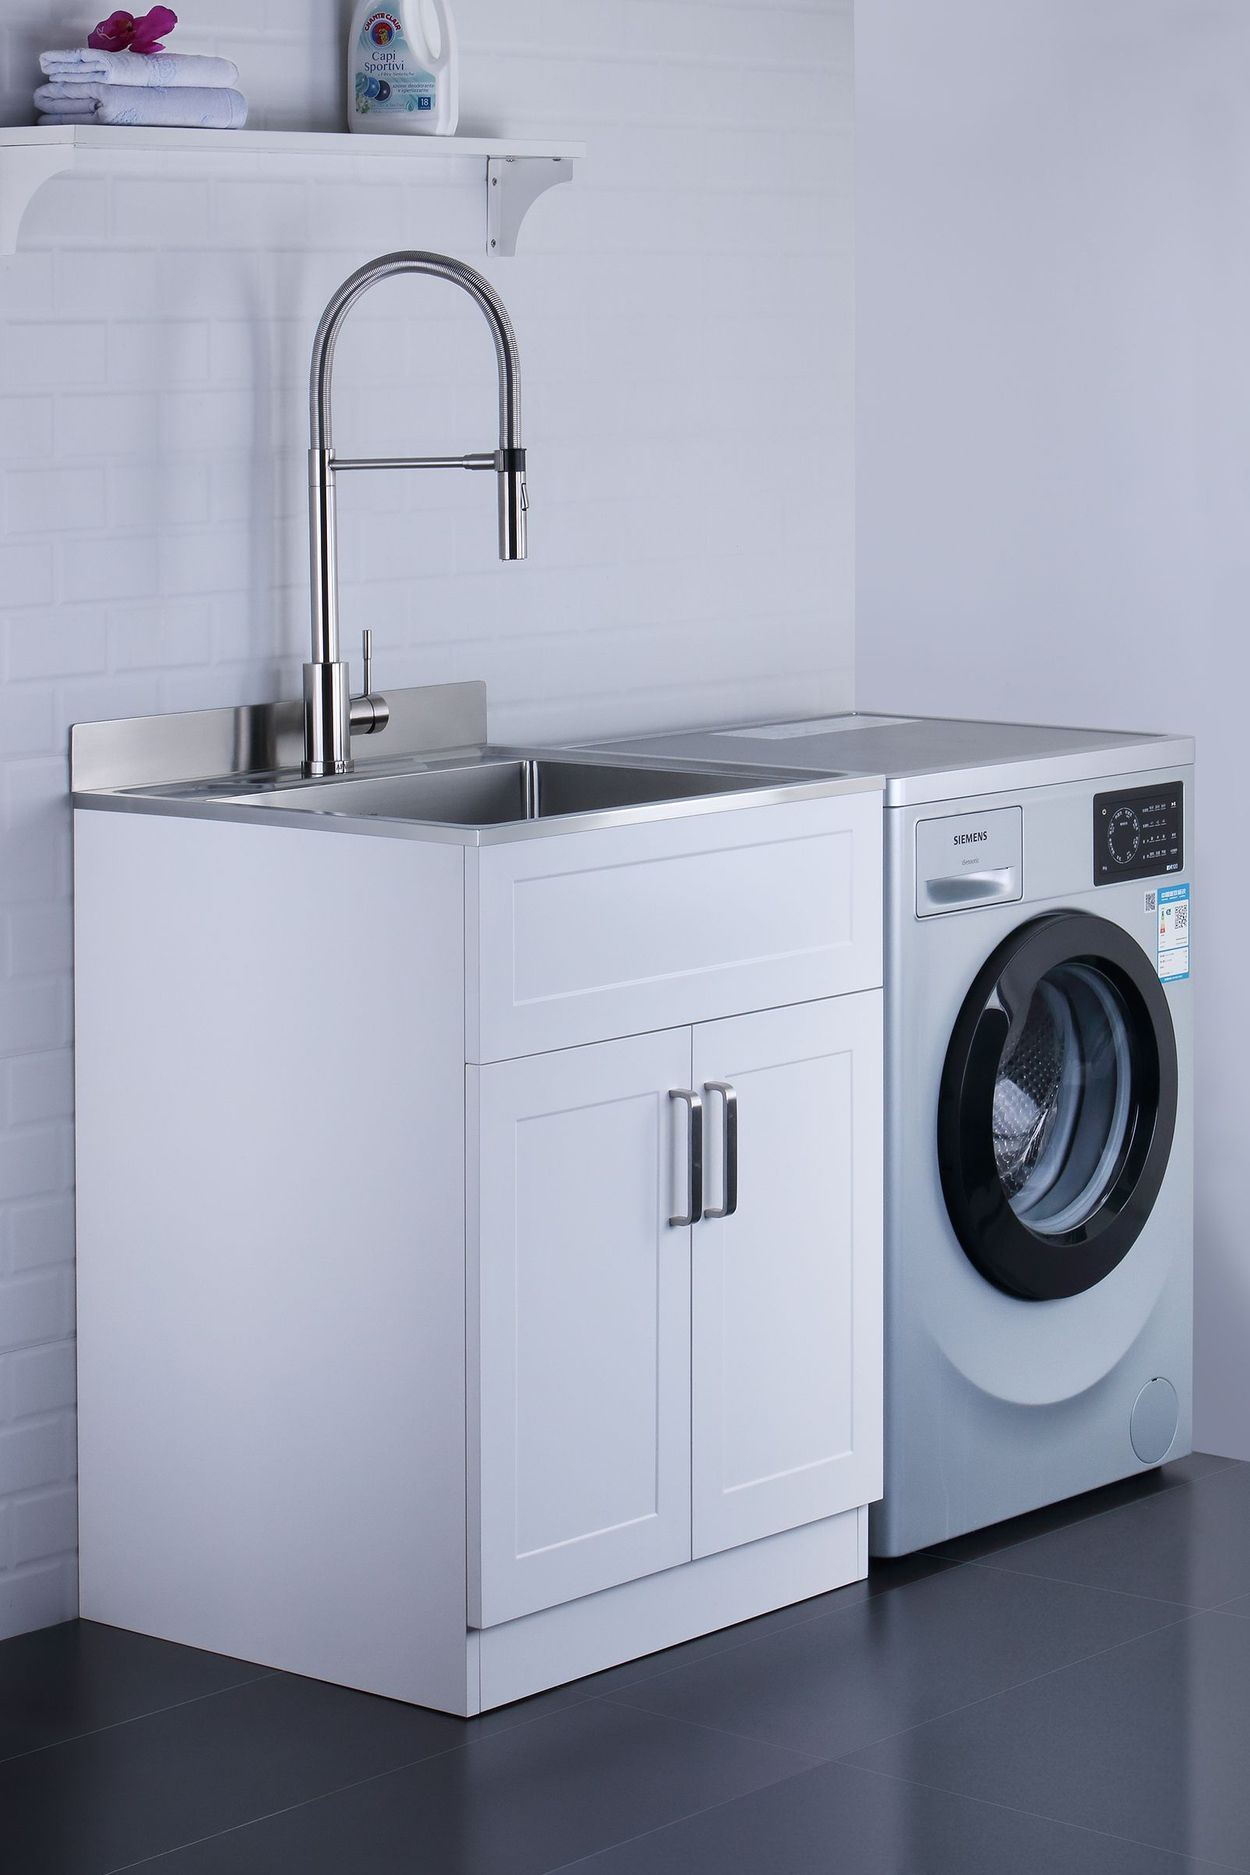 afa stainless steel laundry sink 25 x 22 with faucet cabinet